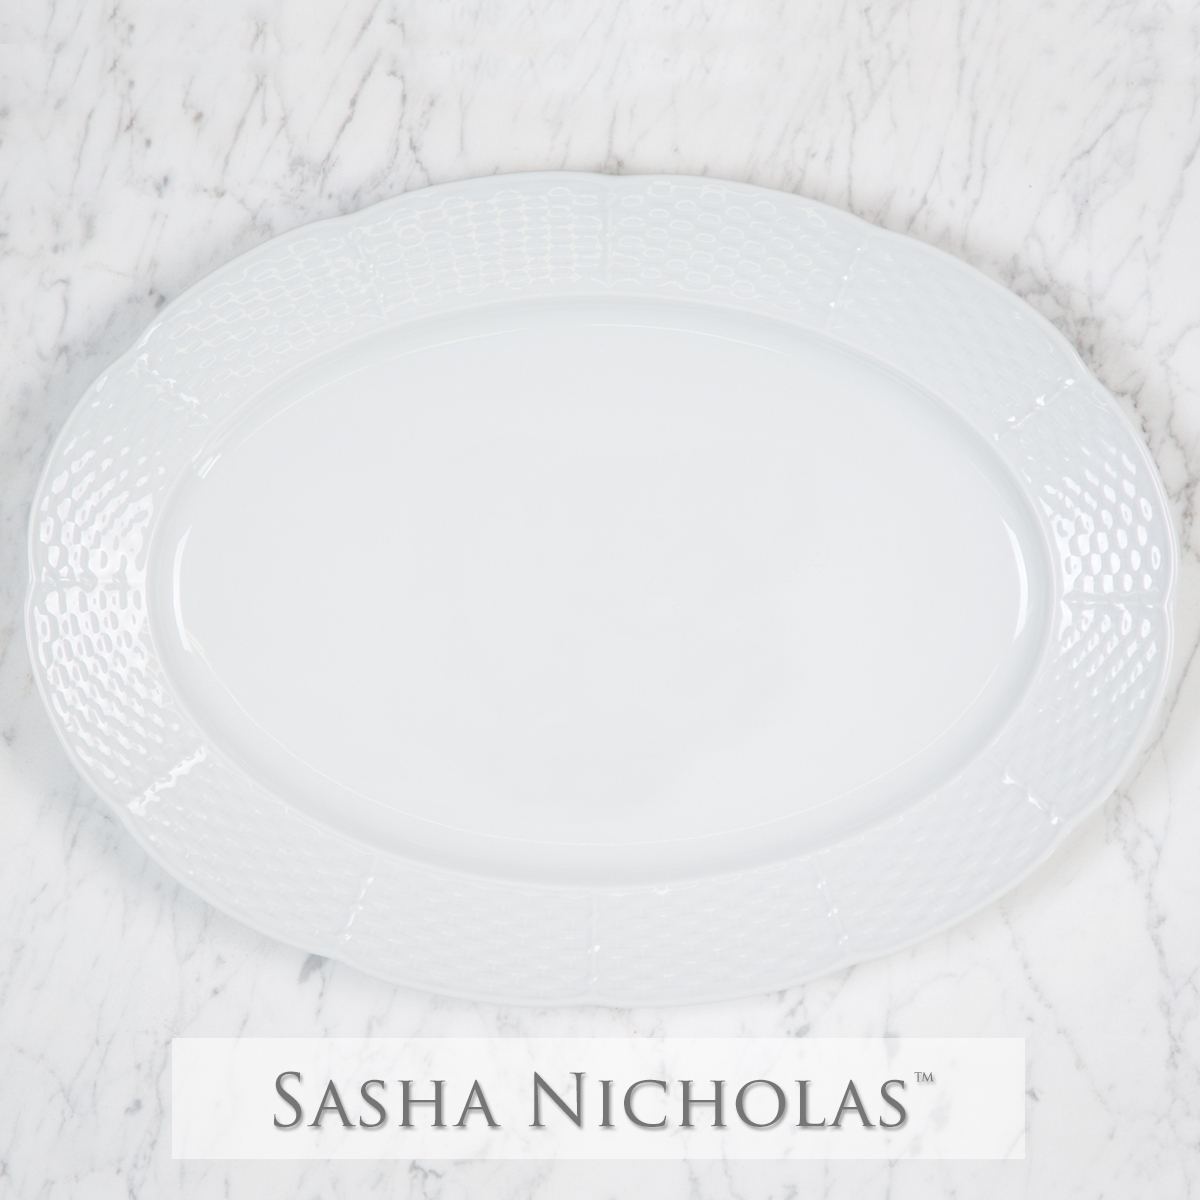 A beautiful addition to your dinnerware collection and to adorn your tablescapes with. It makes the perfect gift for your wedding registry with the included inscription on back. Choose from their signature font styles or use a custom monogram or crest of your choice! | Sasha Nicholas porcelain oval platter